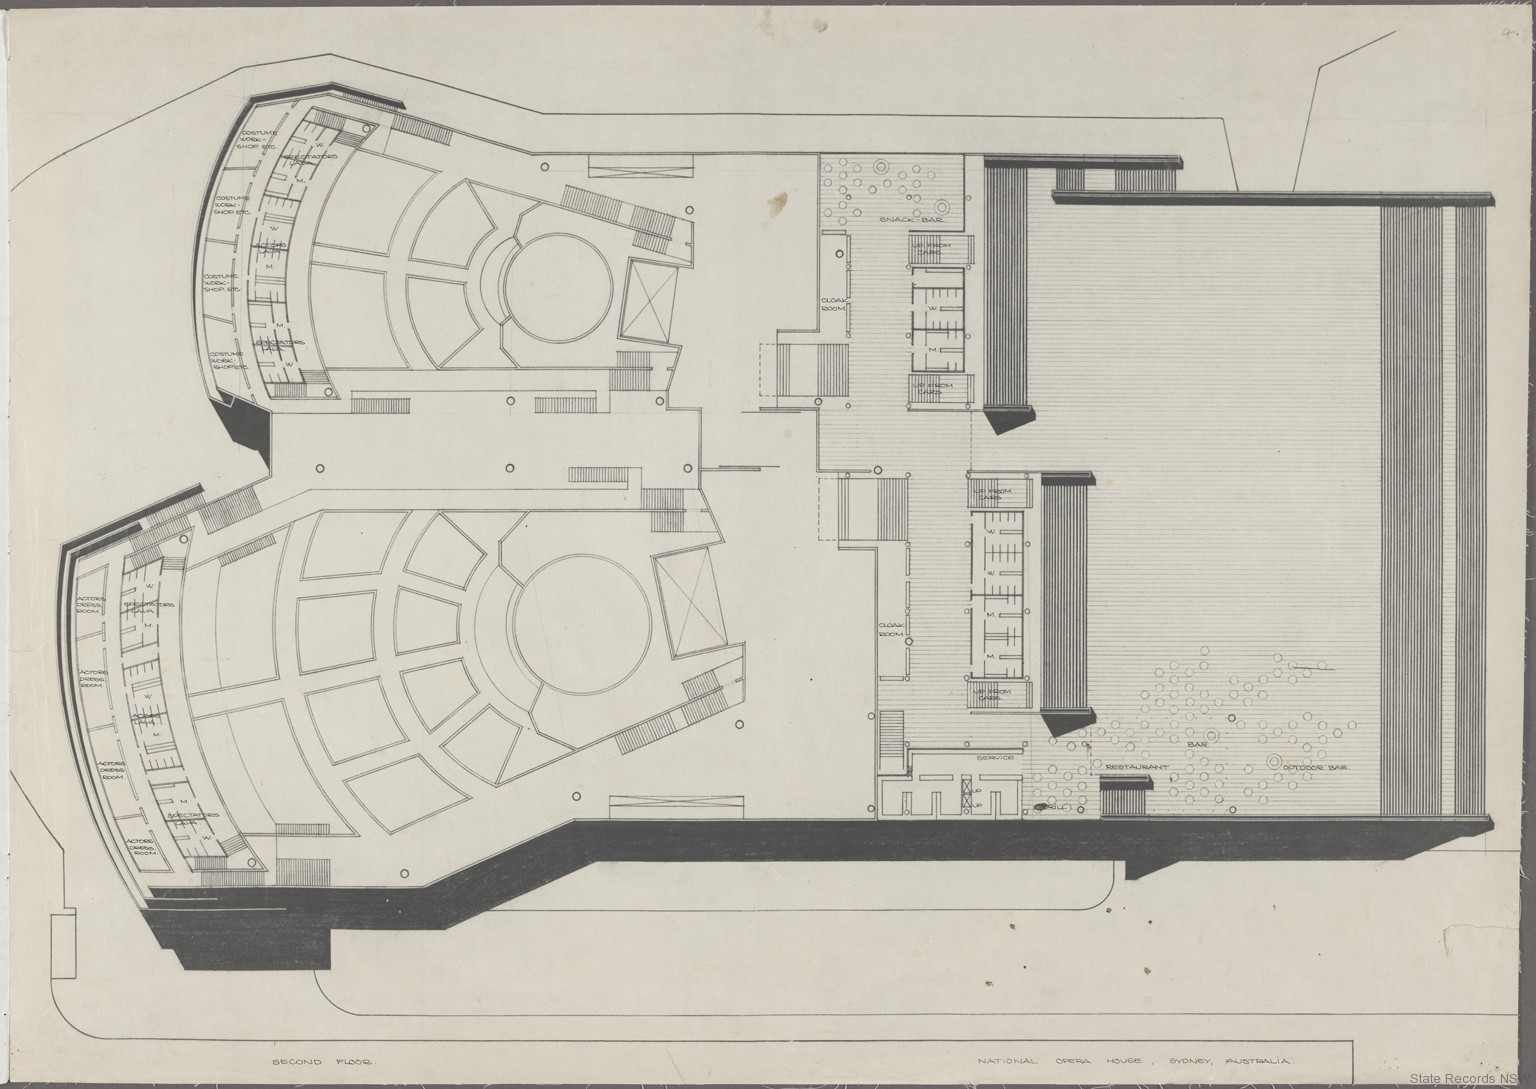 sydney opera house utzon drawings state records nsw second floor nrs 12825 item sz112 04